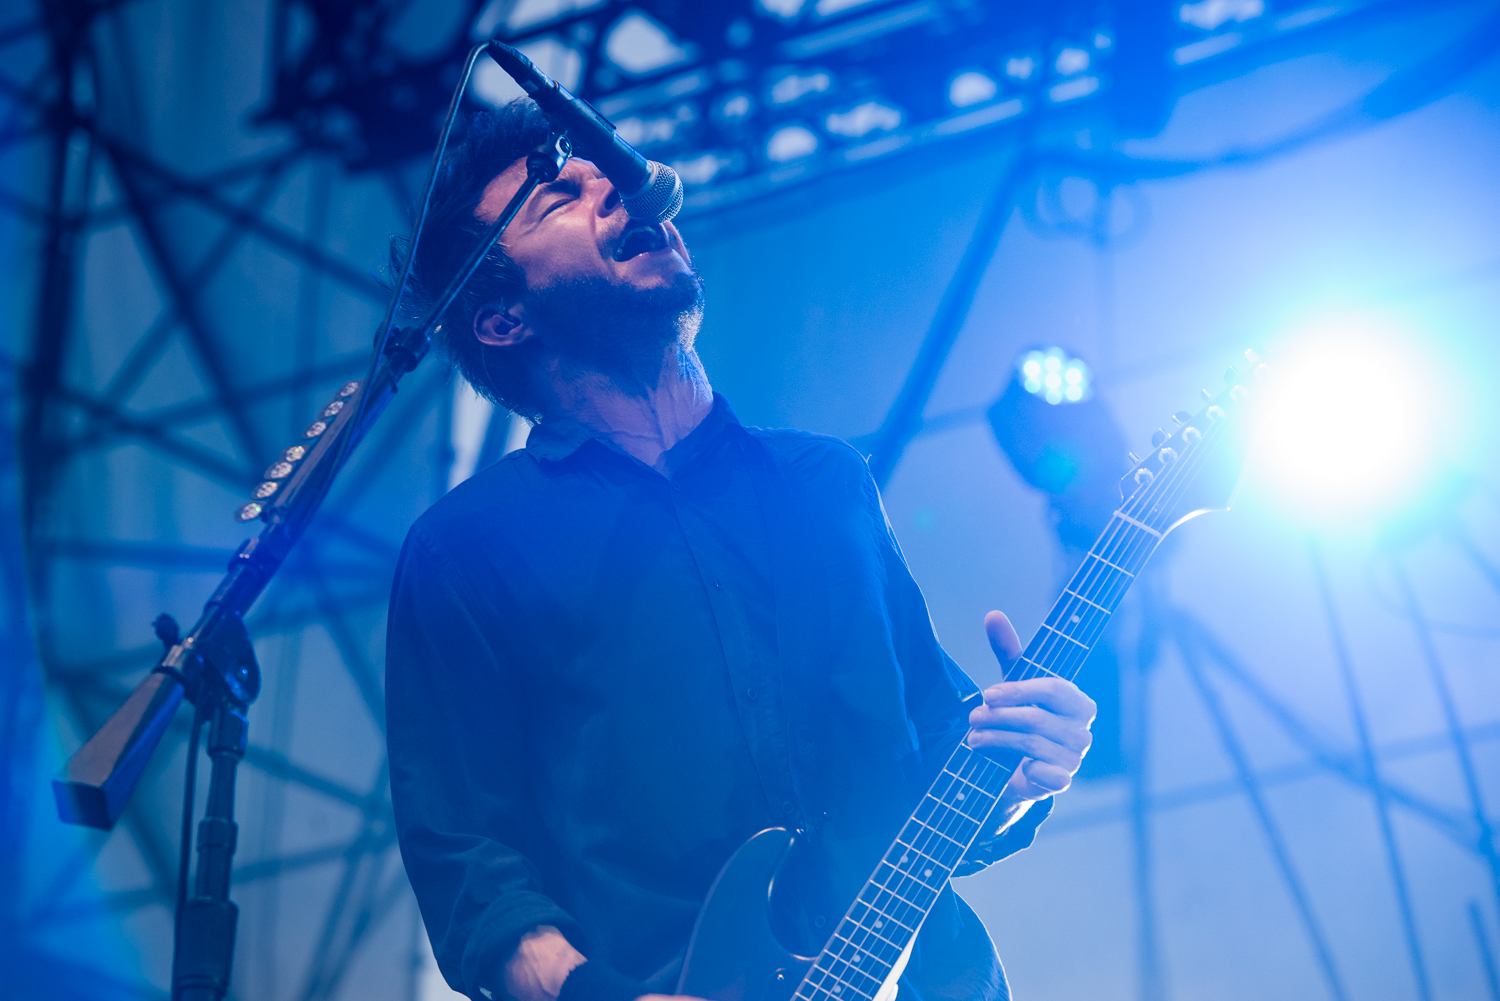 Chevelle frontman Pete Loeffler performing at Summer Music Festival  Musikfest, August 2016 in Bethlehem, Pennsylvania.  Sands Steel Stage.